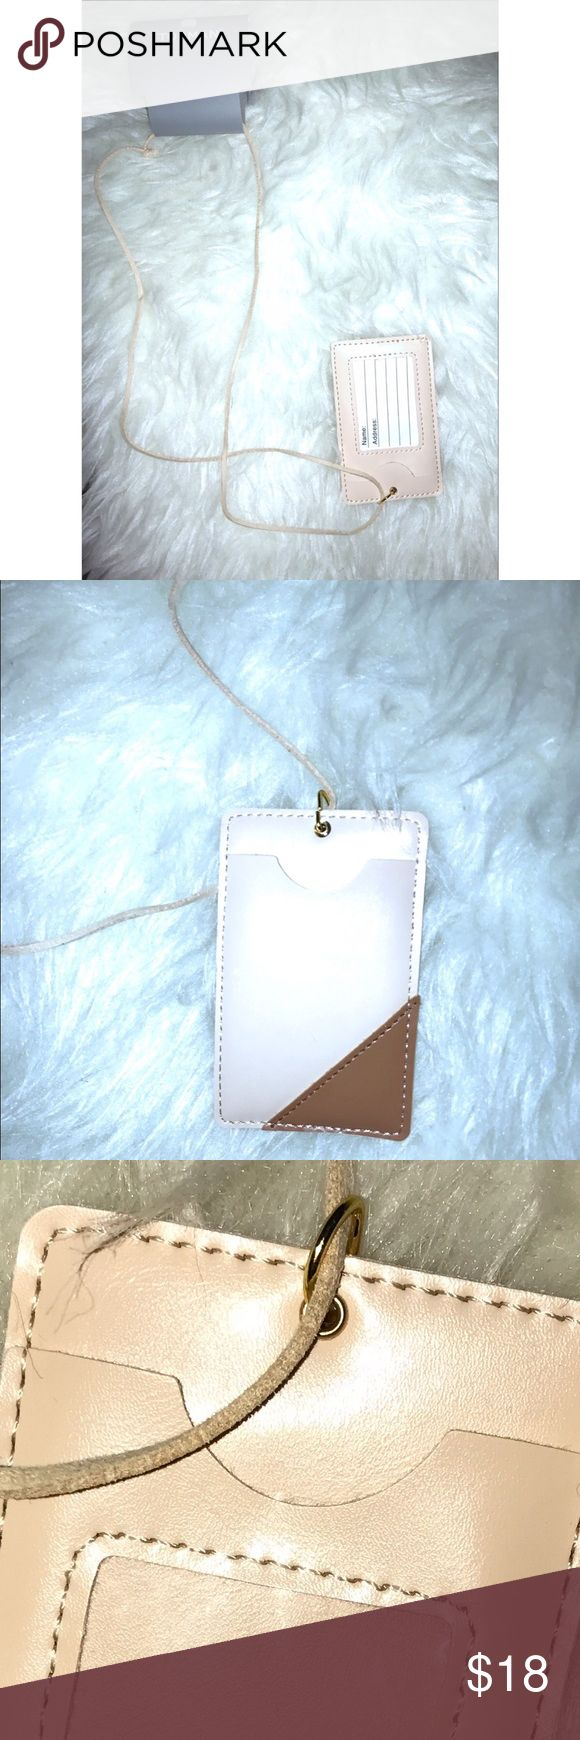 NWT Topman (TopShop) Leather Cardholder Brand new with tags. UNISEX CARDHOLDER Cardholder to conveniently hold your cards/keys around your neck. Awesome for dancing, jogging, amusement parks, traveling and lightening your load. Fits in your pocket or can be worn around your neck so you don't have to worry about losing your wallet or having it slip out of your pocket and works well when you don't have any pockets. BUNDLE AND SAVE! ANOTHER IS available in WHITE! Topshop Accessories Key & Card…